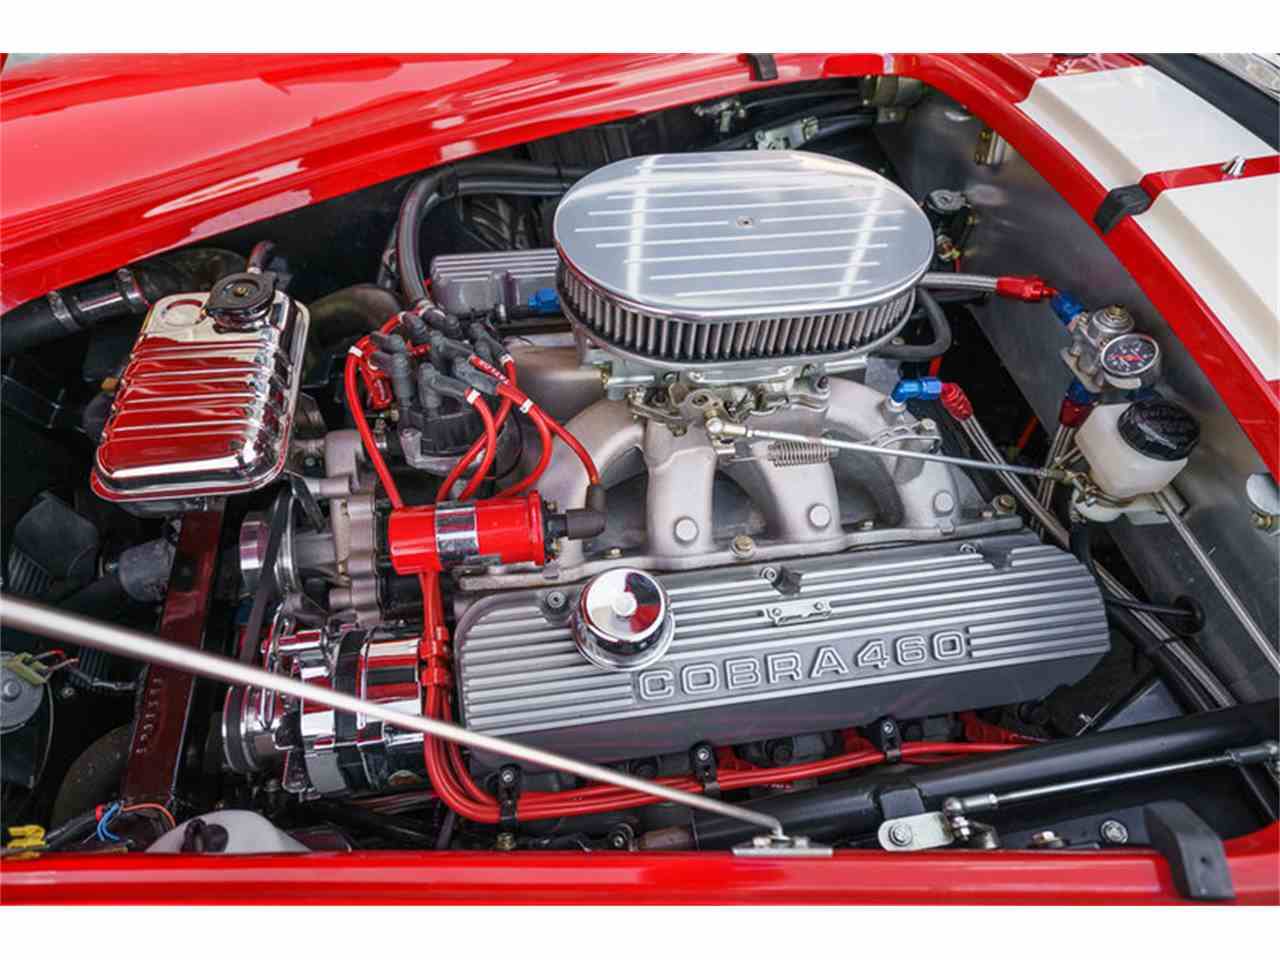 Large Picture of Classic 1965 Cobra located in Missouri - $64,995.00 Offered by Fast Lane Classic Cars Inc. - I3CA